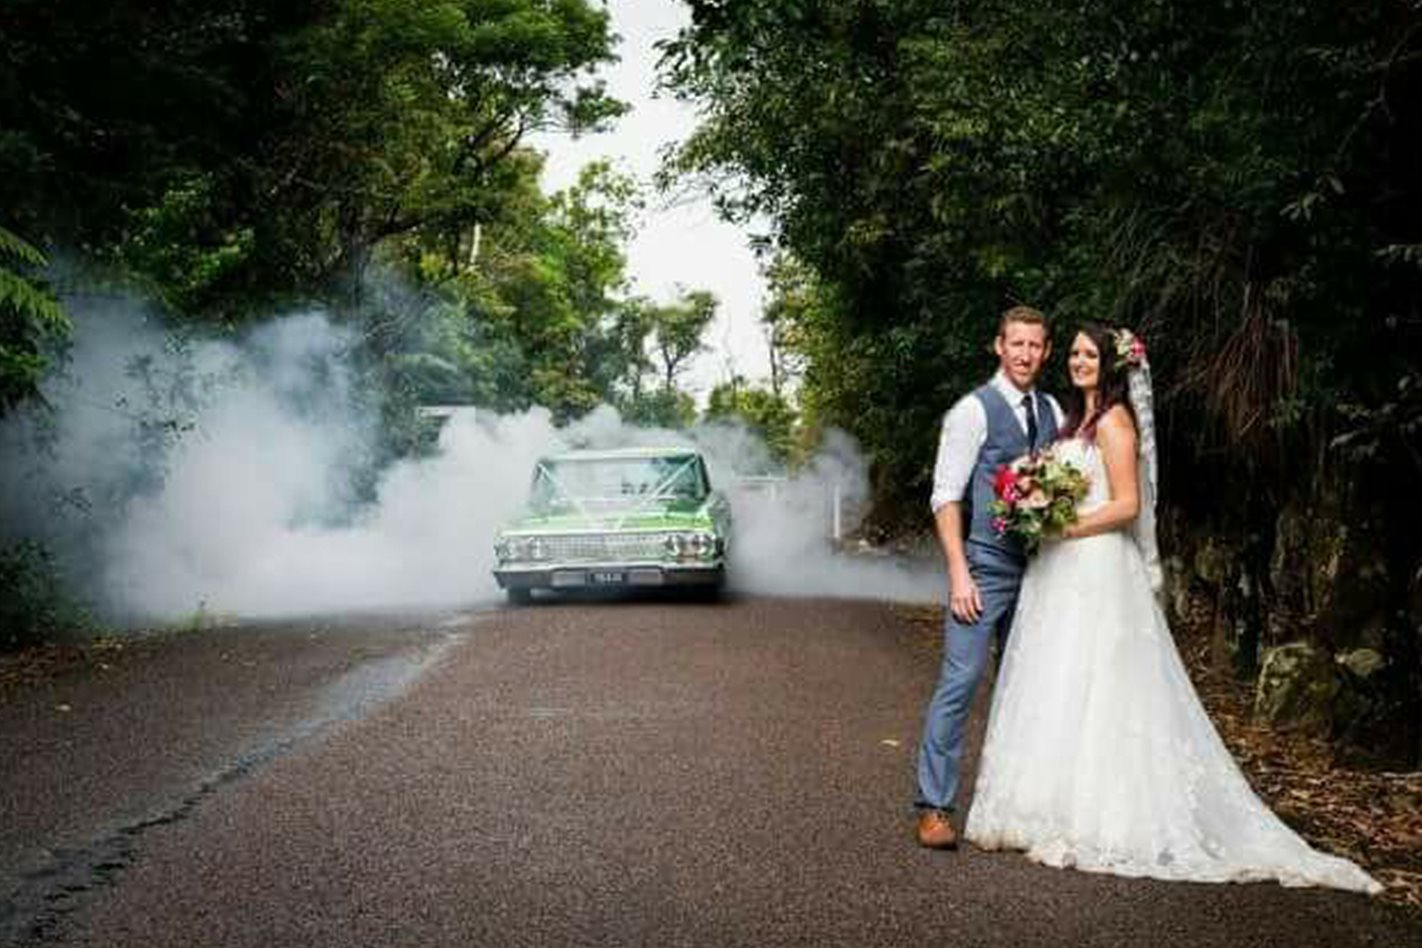 Luke Coble's Impala wedding car